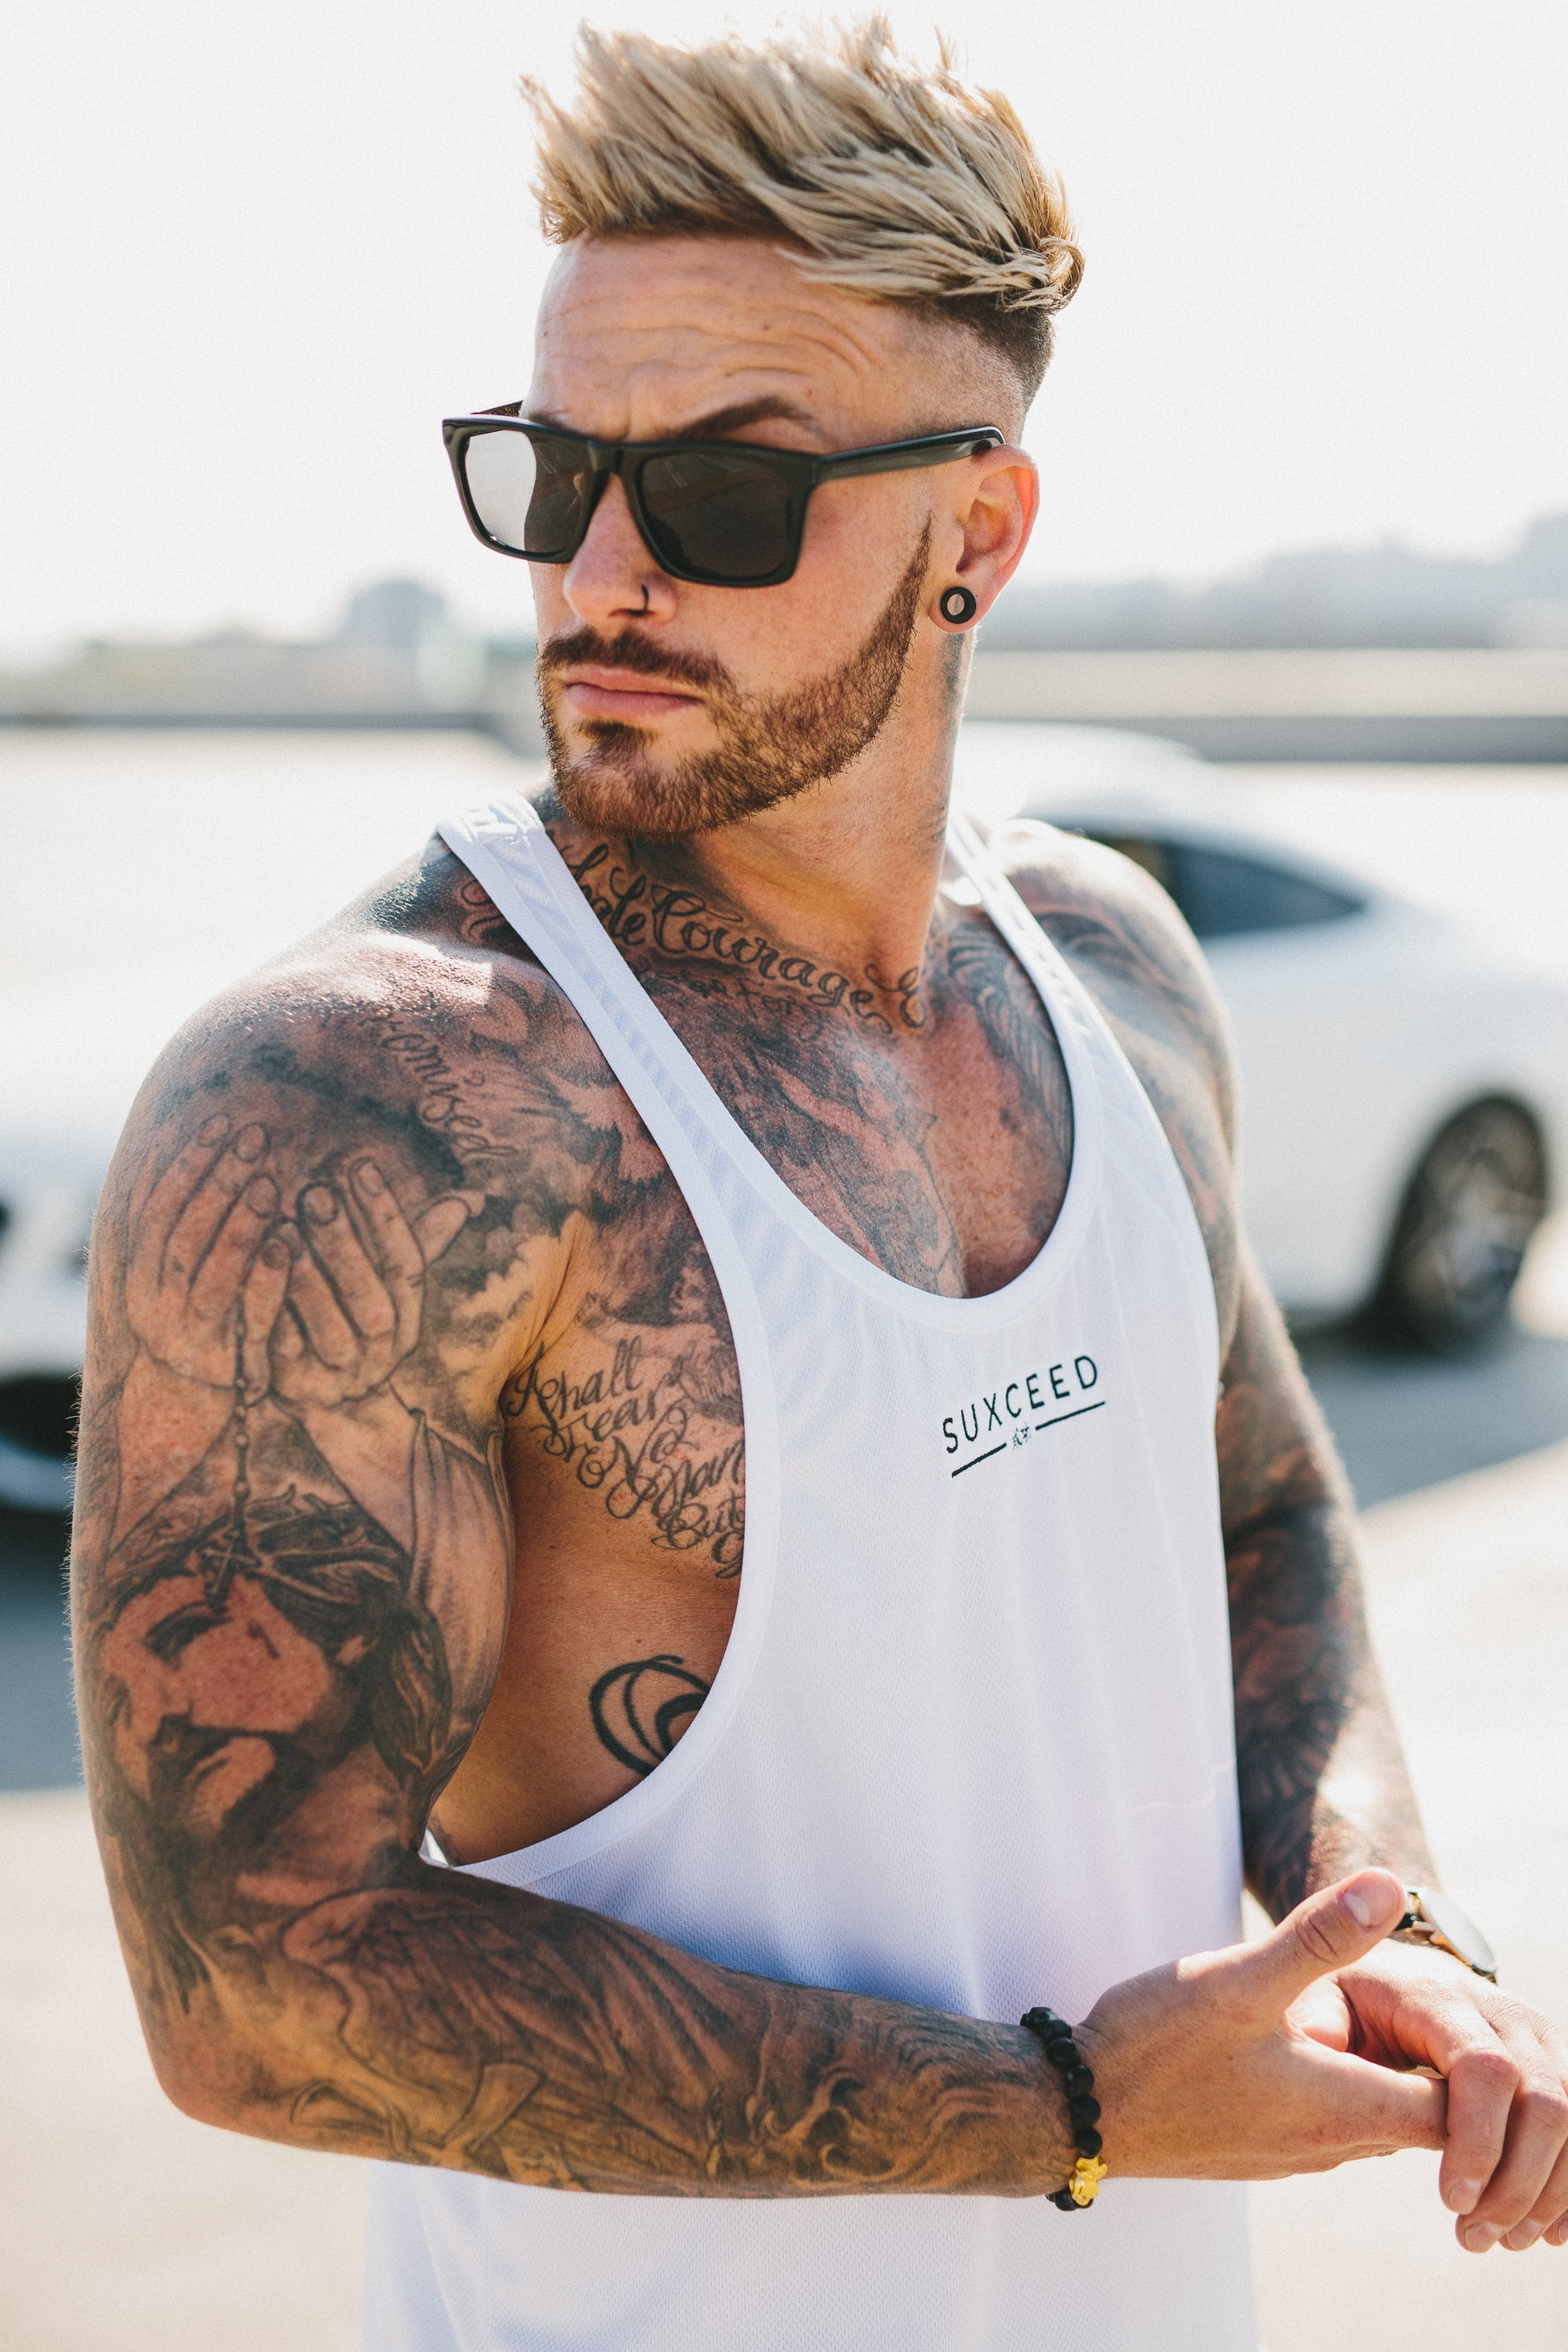 SUXCEED 'YANG' VEST (W) (WAS £24.99)